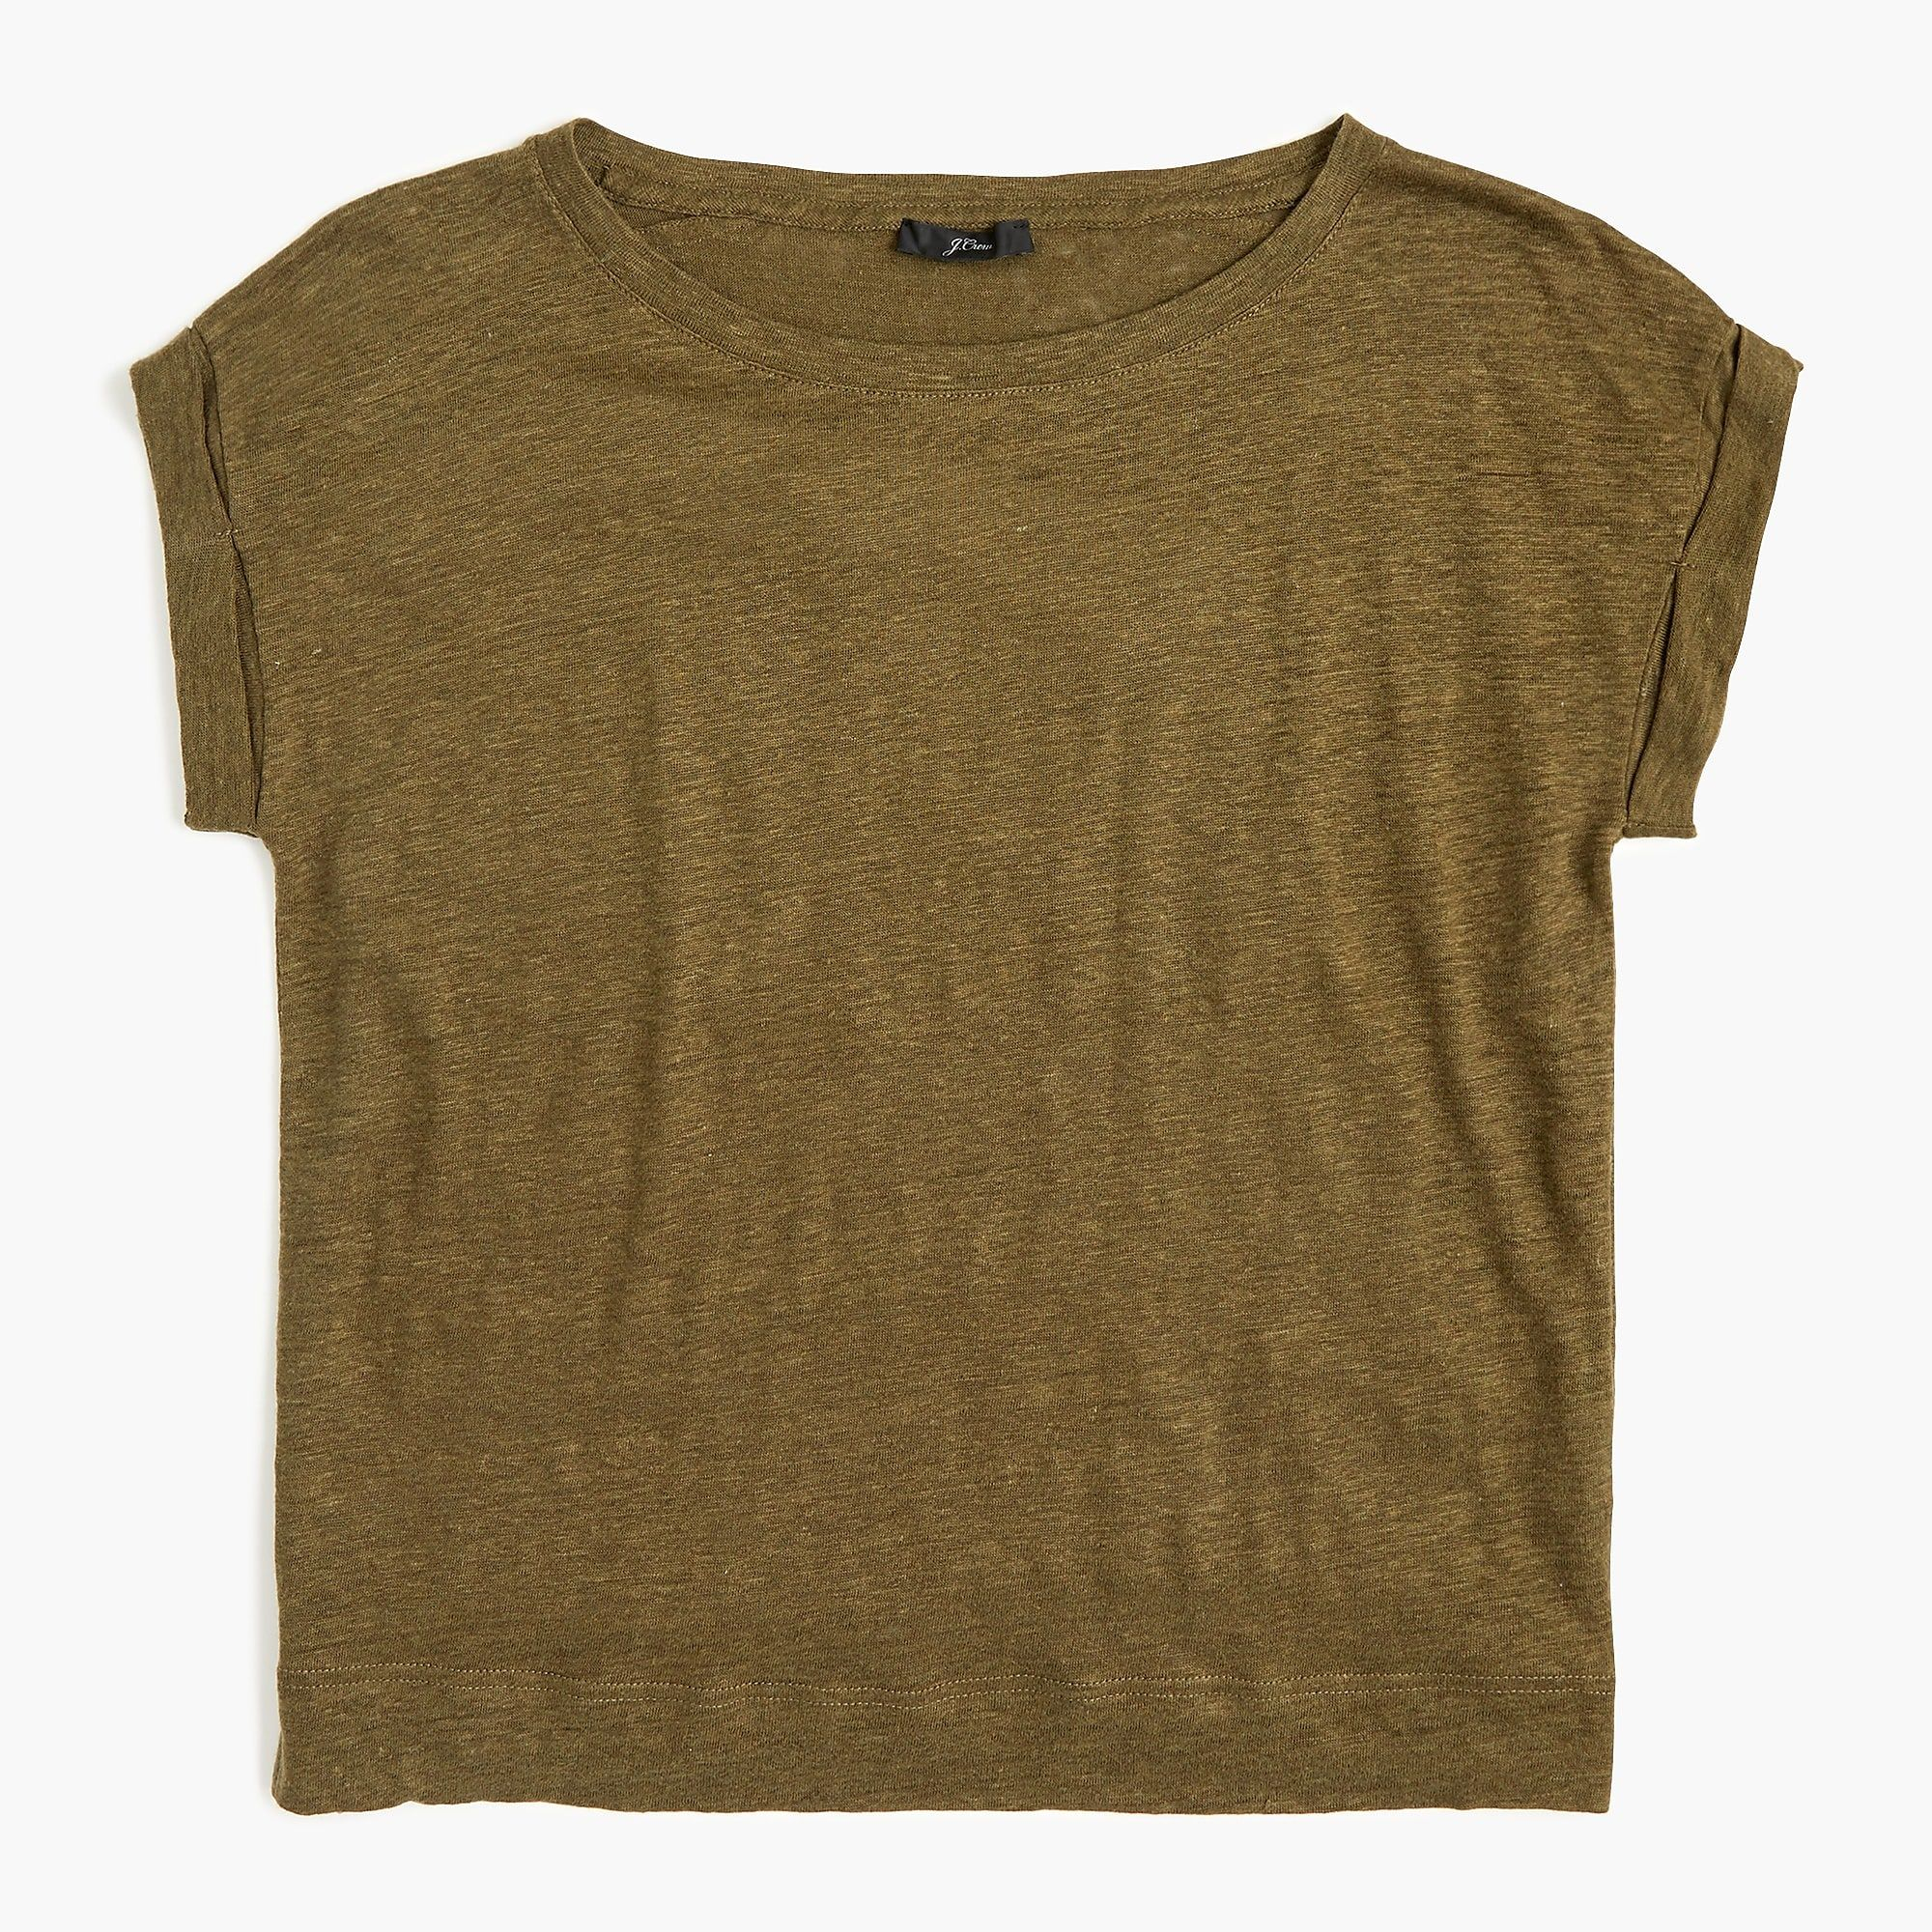 Linen Rolled Cuff T Shirt For Women T Shirts For Women Rolled Cuff Women